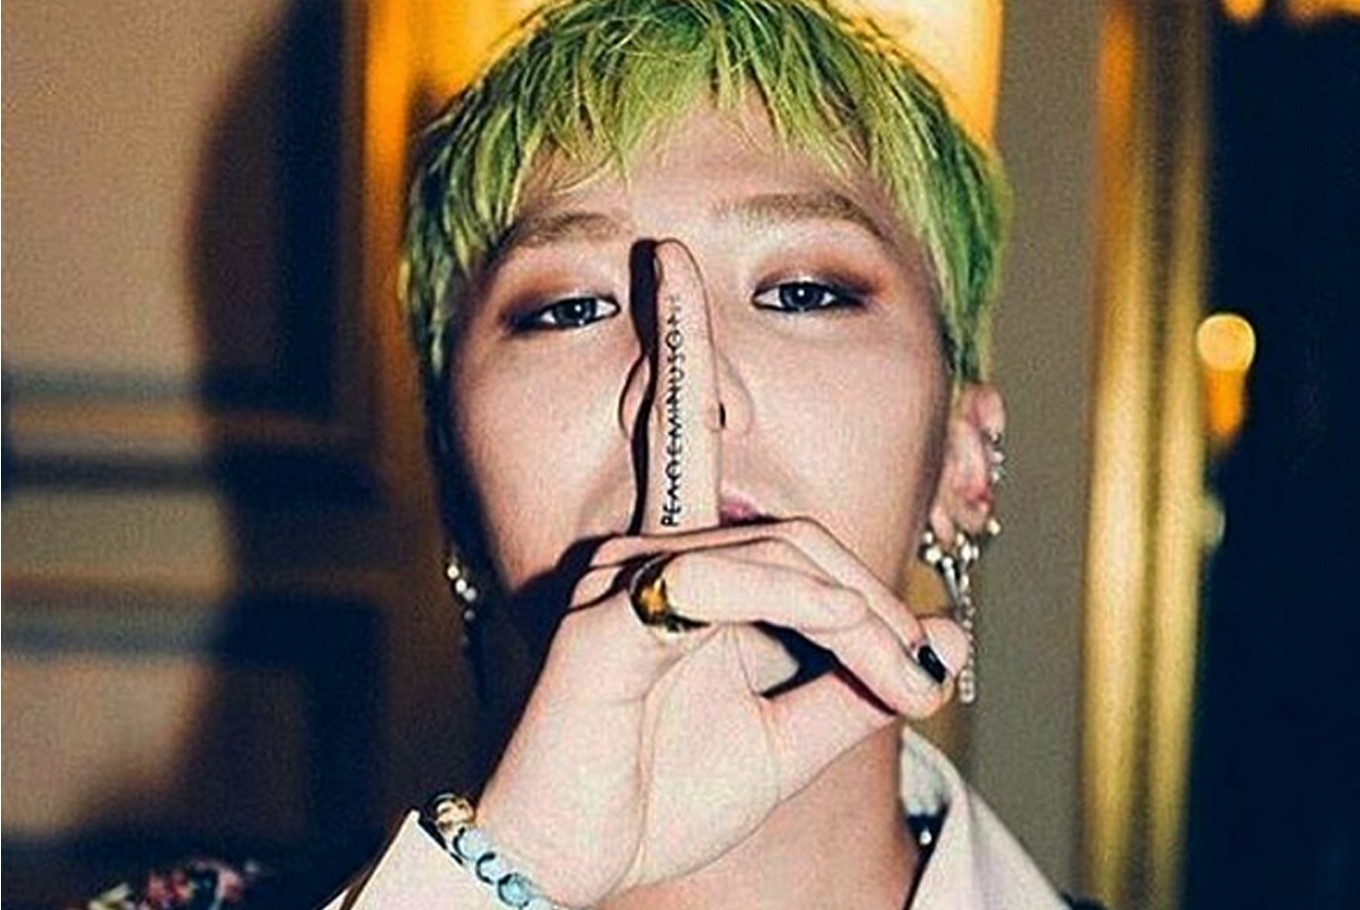 g dragon fans slam media outlet over special treatment coverage